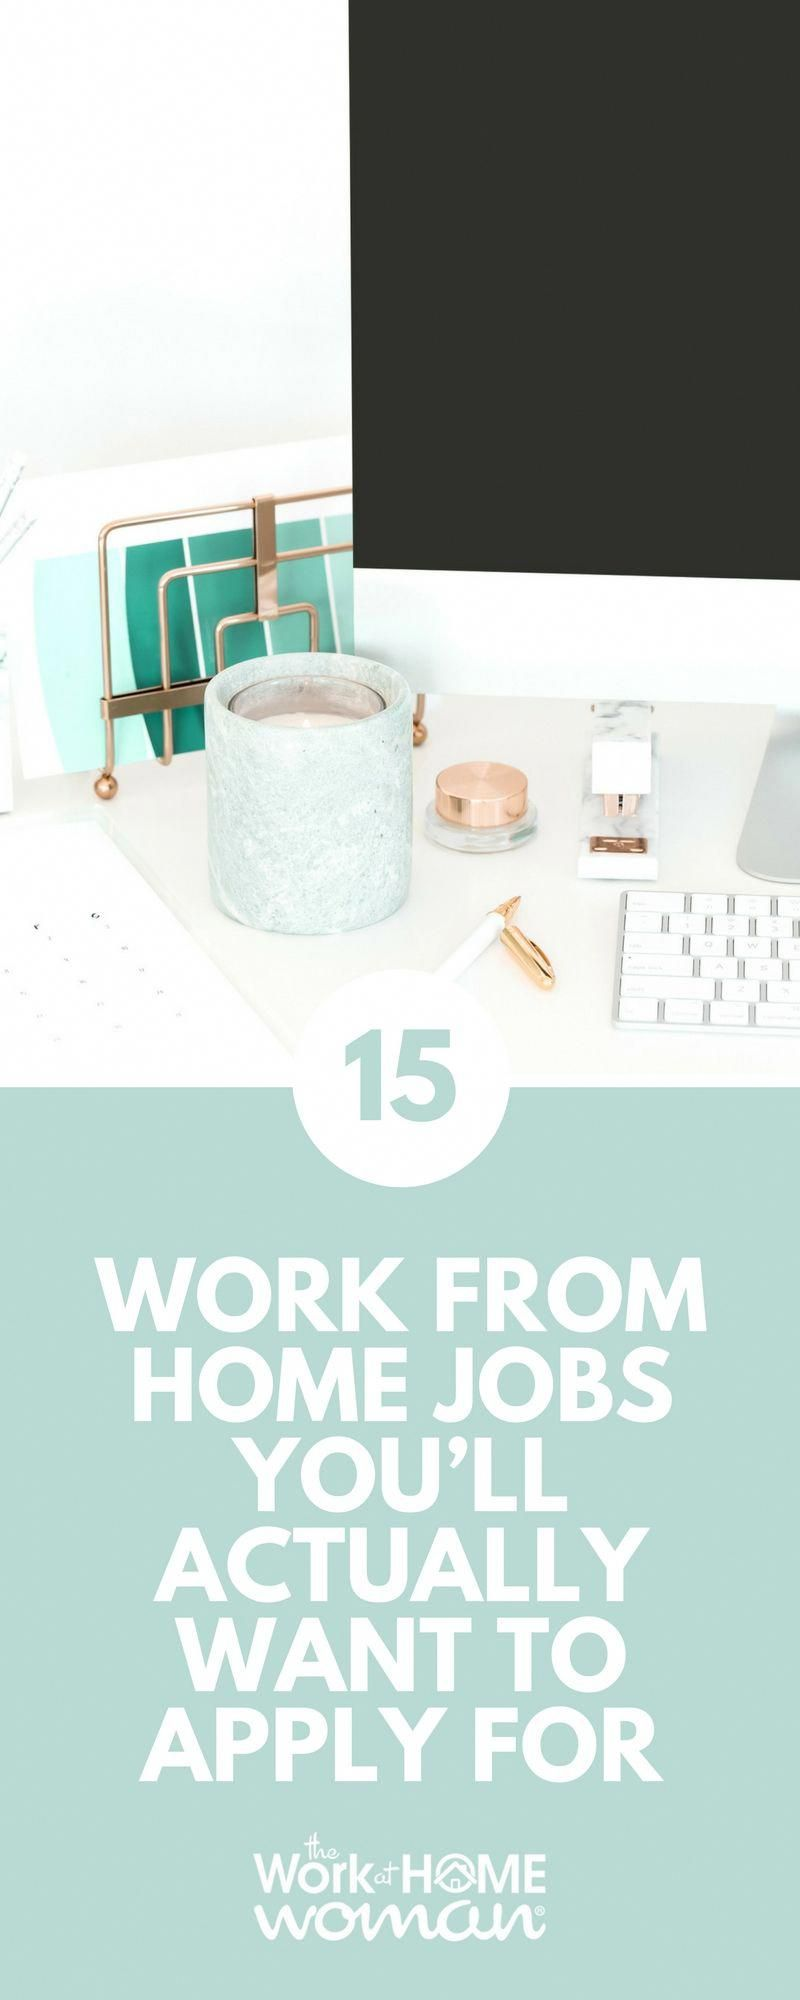 15 Work From Home Jobs You'll Actually Want to Apply For